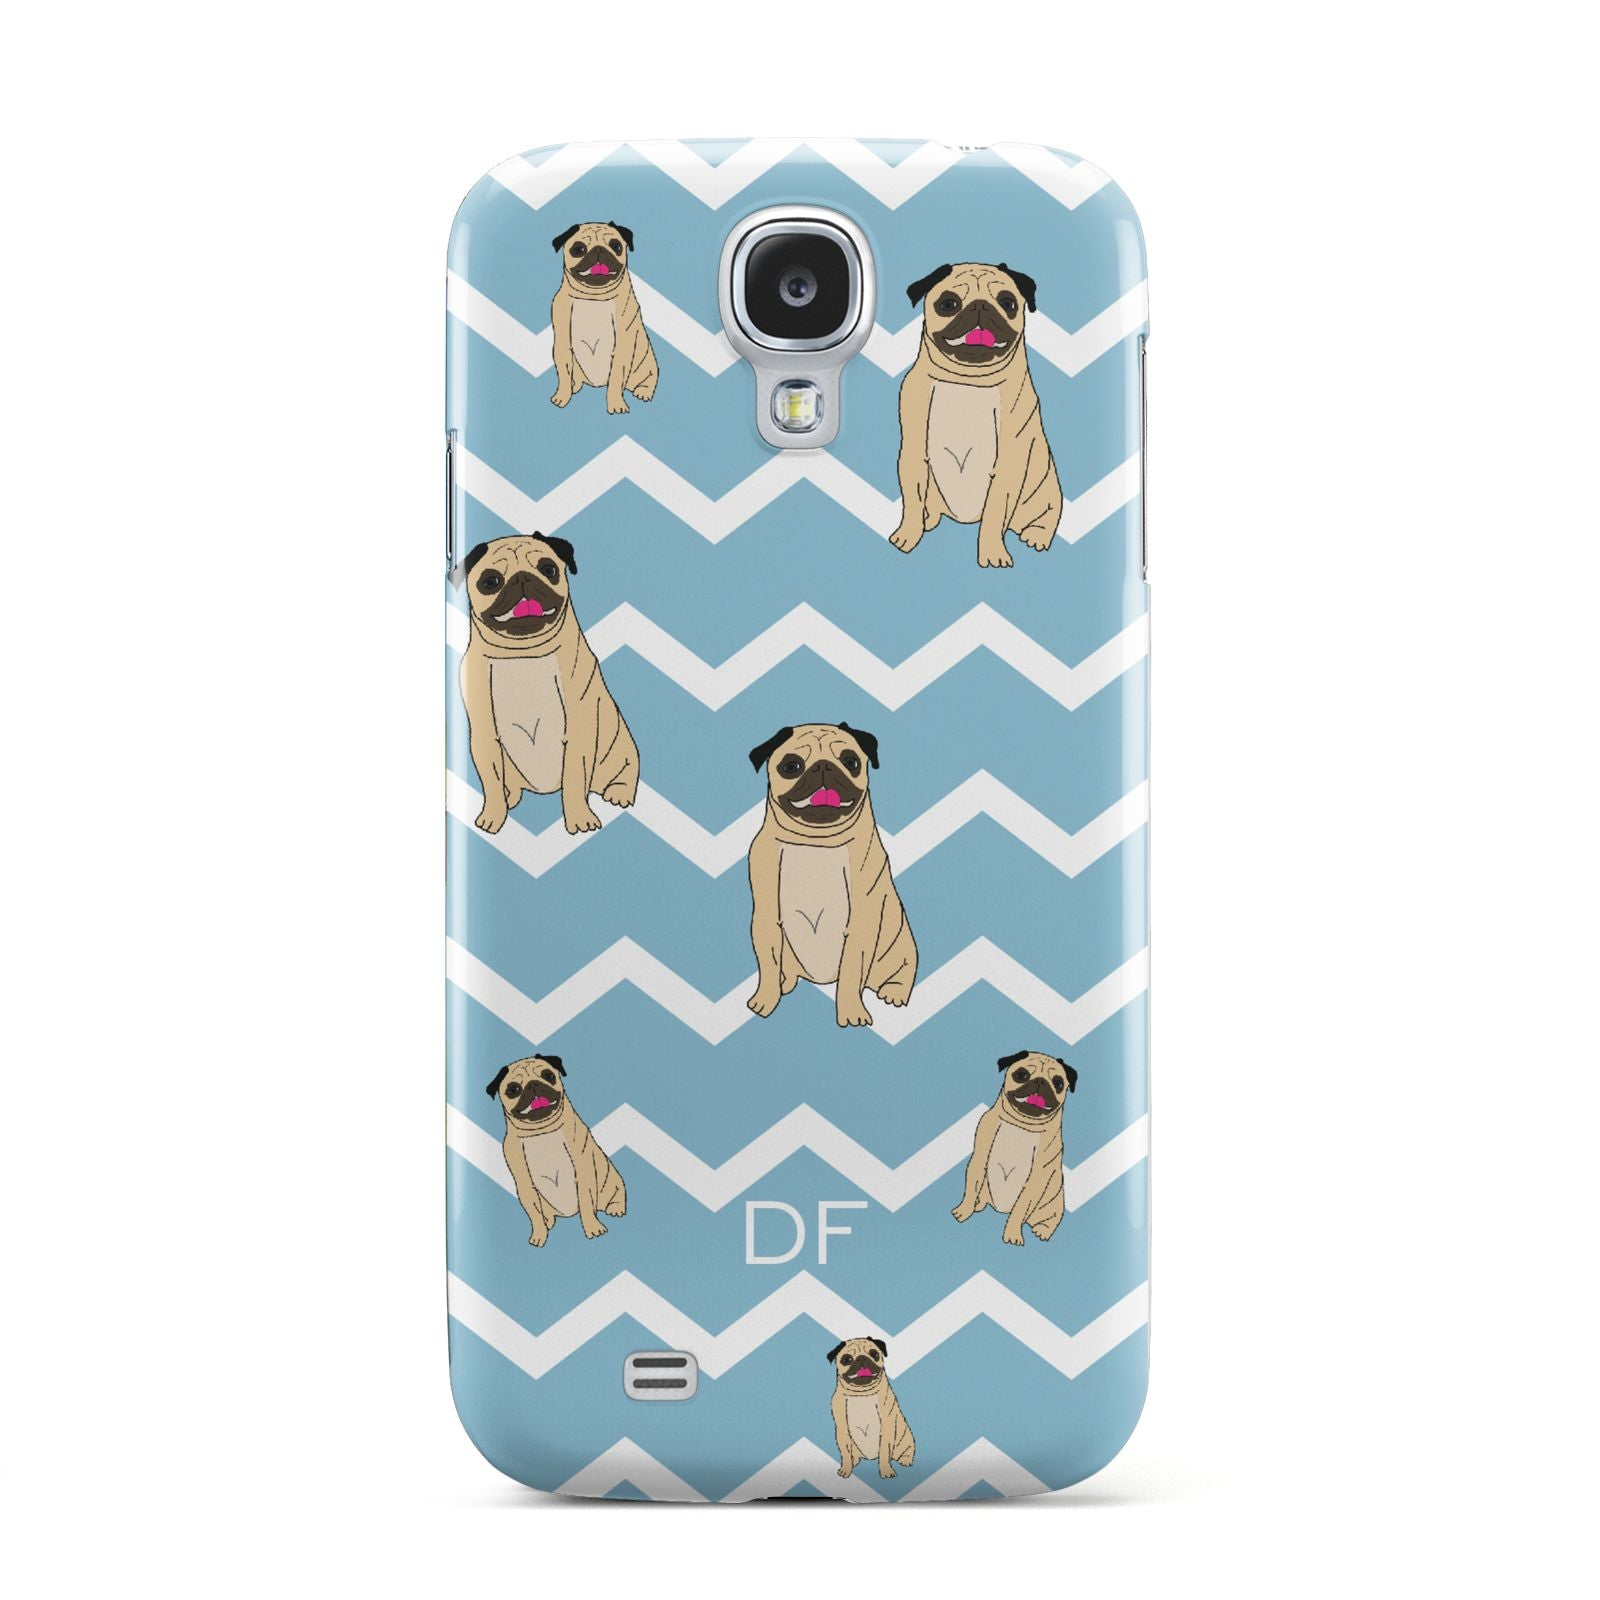 Personalised Pug Initials Samsung Galaxy S4 Case